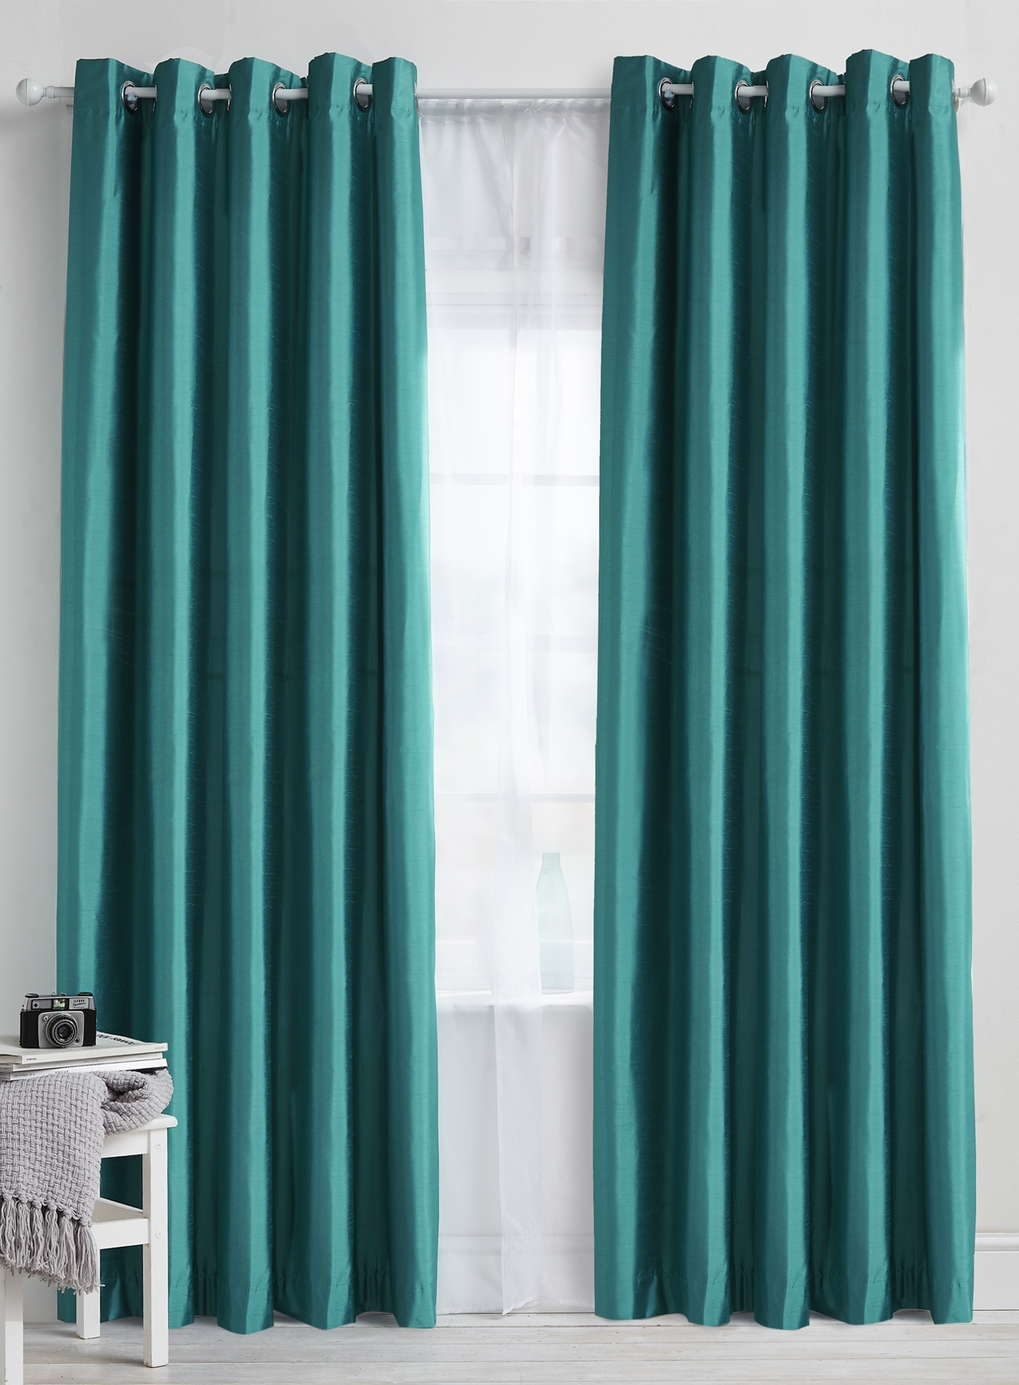 Best Blackout Curtains In Top Inspirations And Thermal Bedroom With Regard To Plain White Blackout Curtains (View 2 of 15)